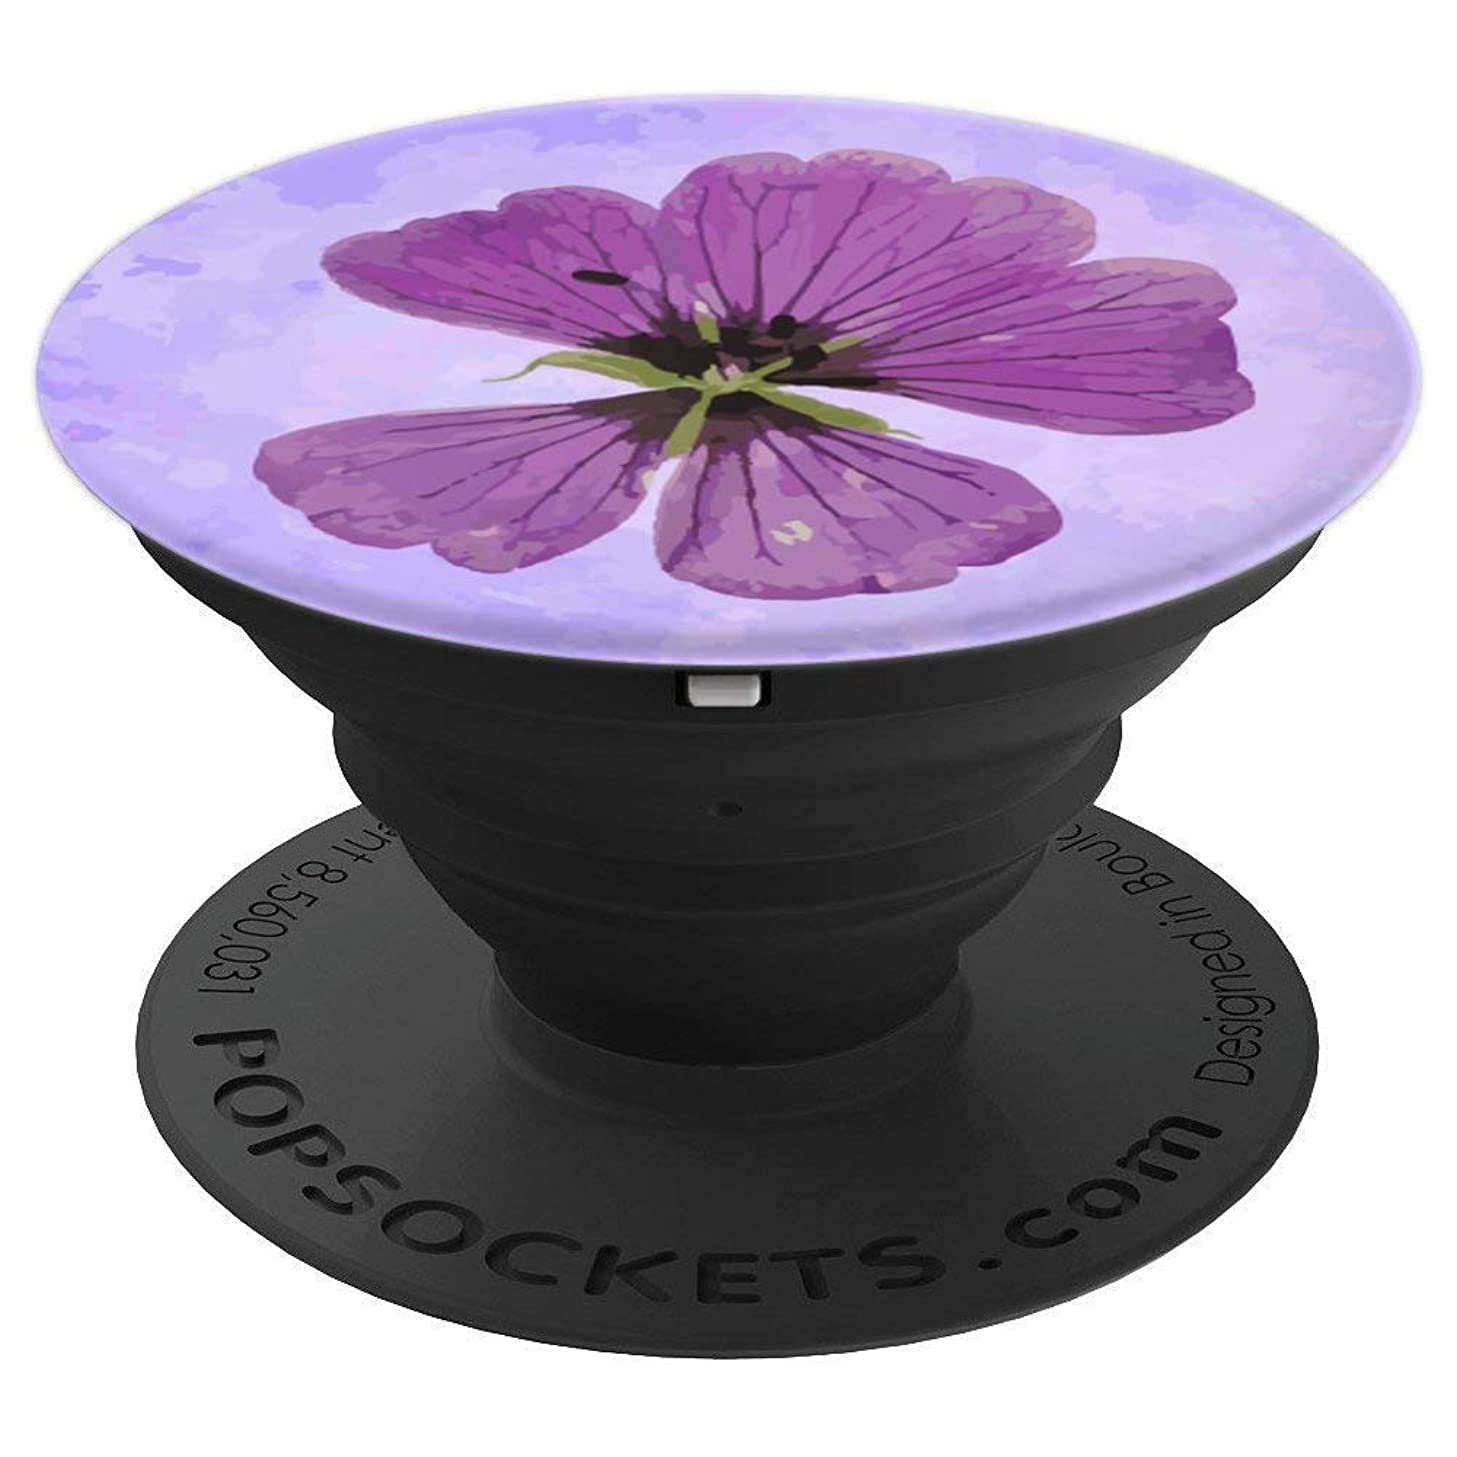 Classy Stylish Pressed Flower Lilac Purple - PopSockets Grip and Stand for Phones and Tablets